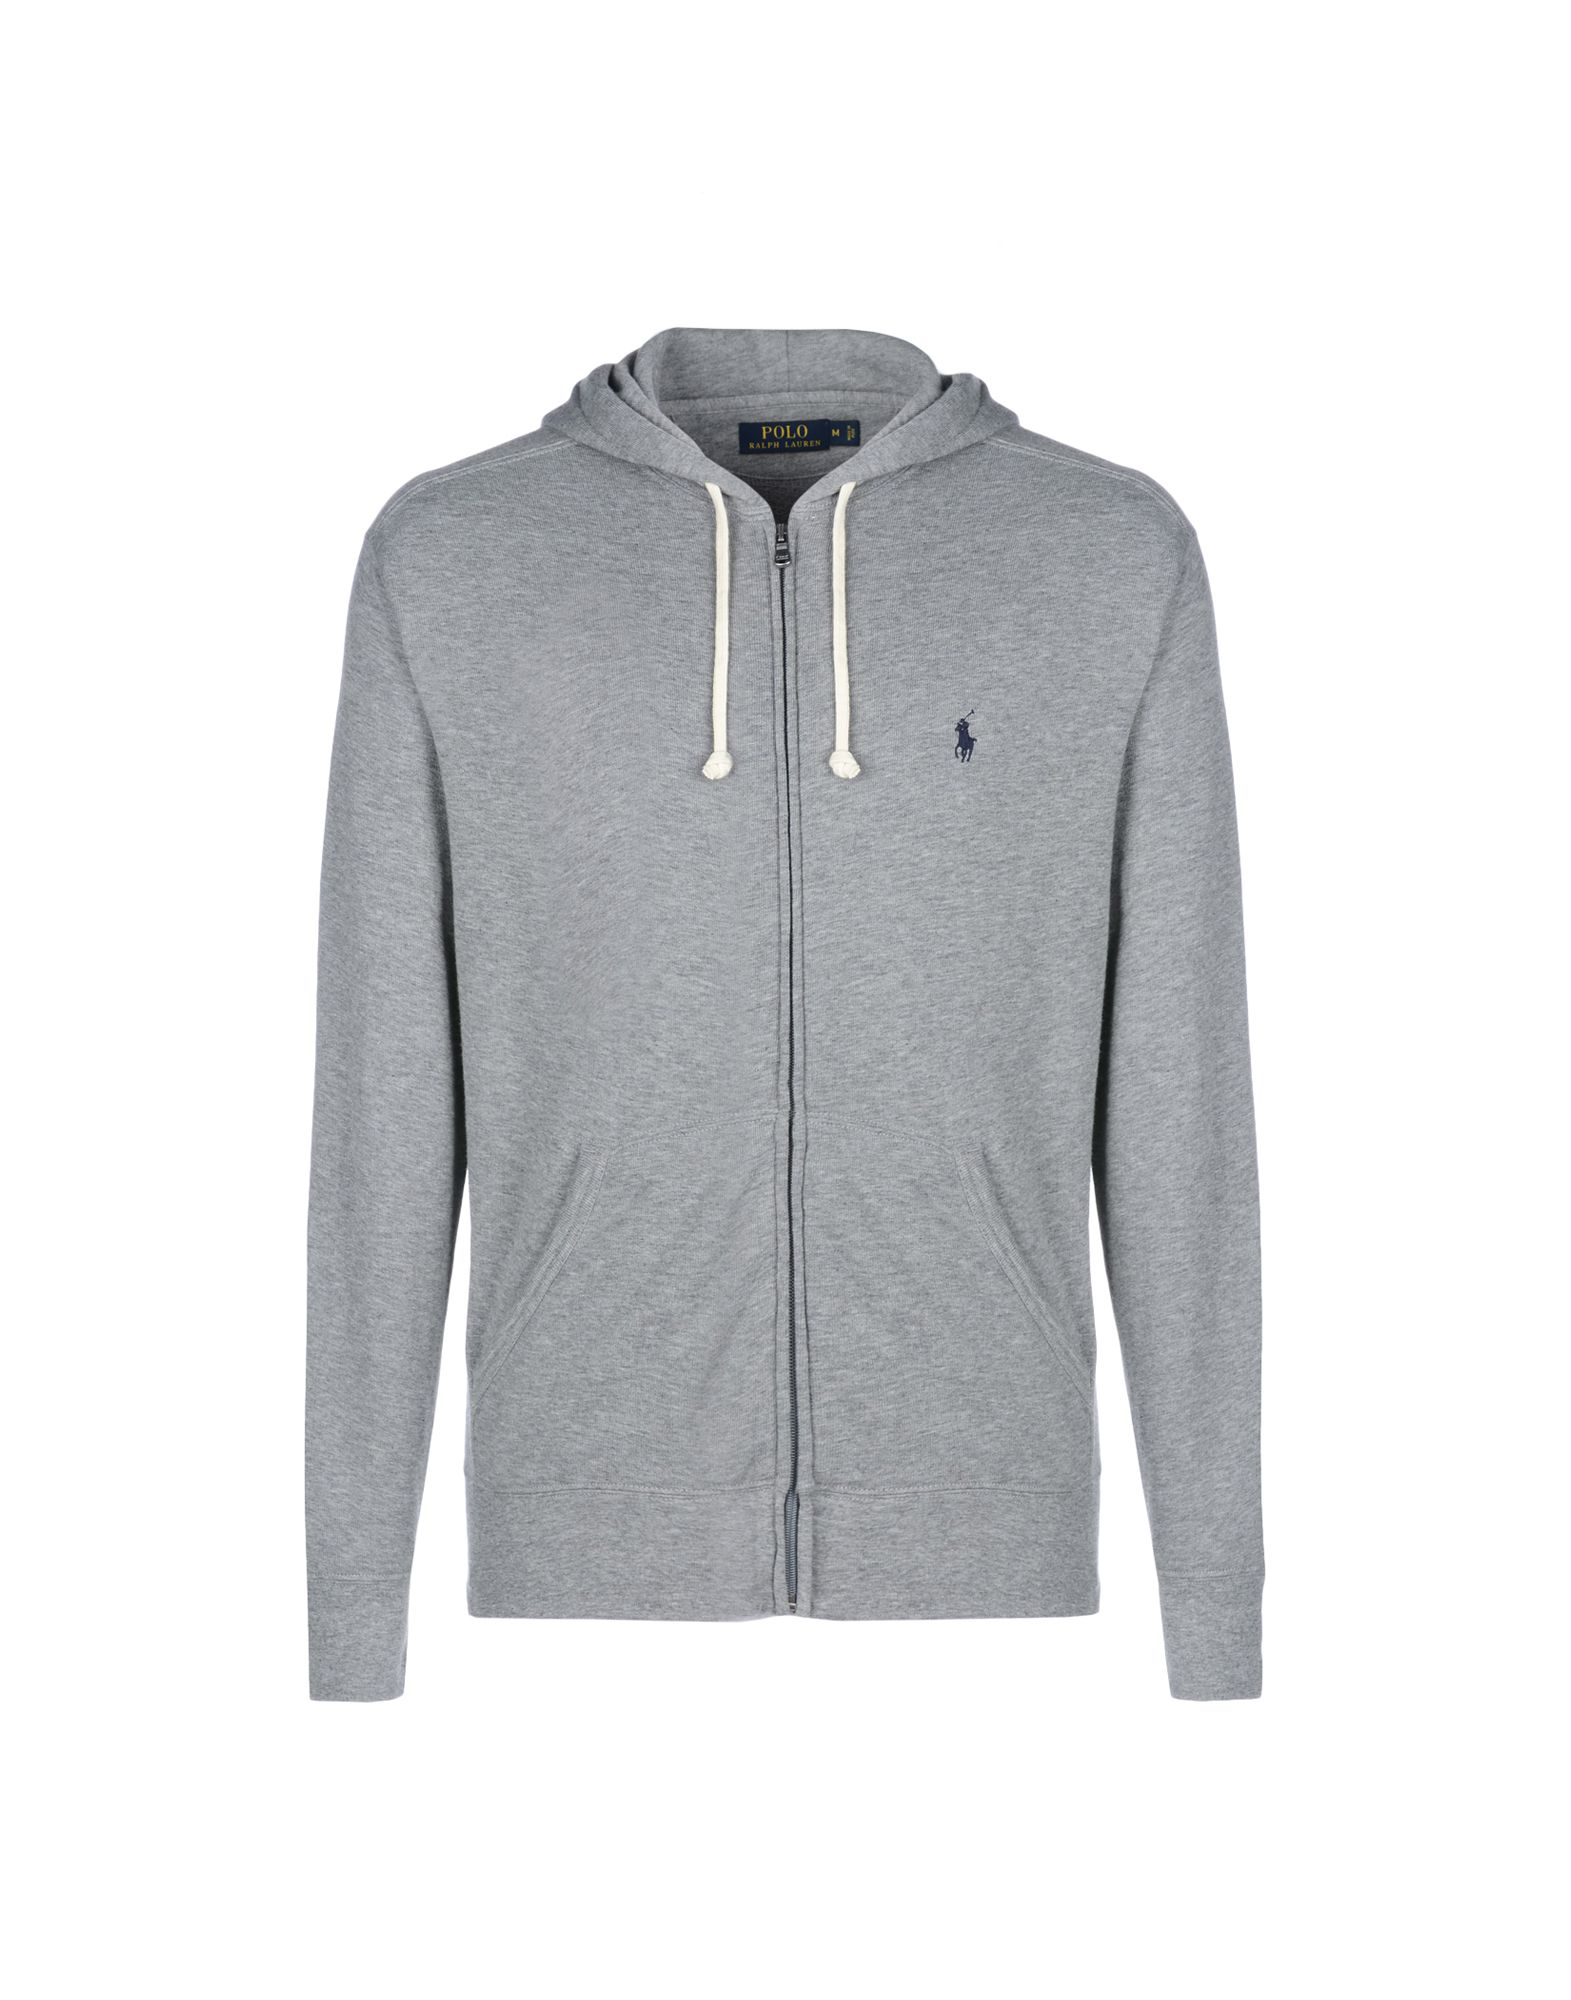 lowest price 12033 0e9bf POLO RALPH LAUREN Hooded track jacket - Jumpers and Sweatshirts | YOOX.COM